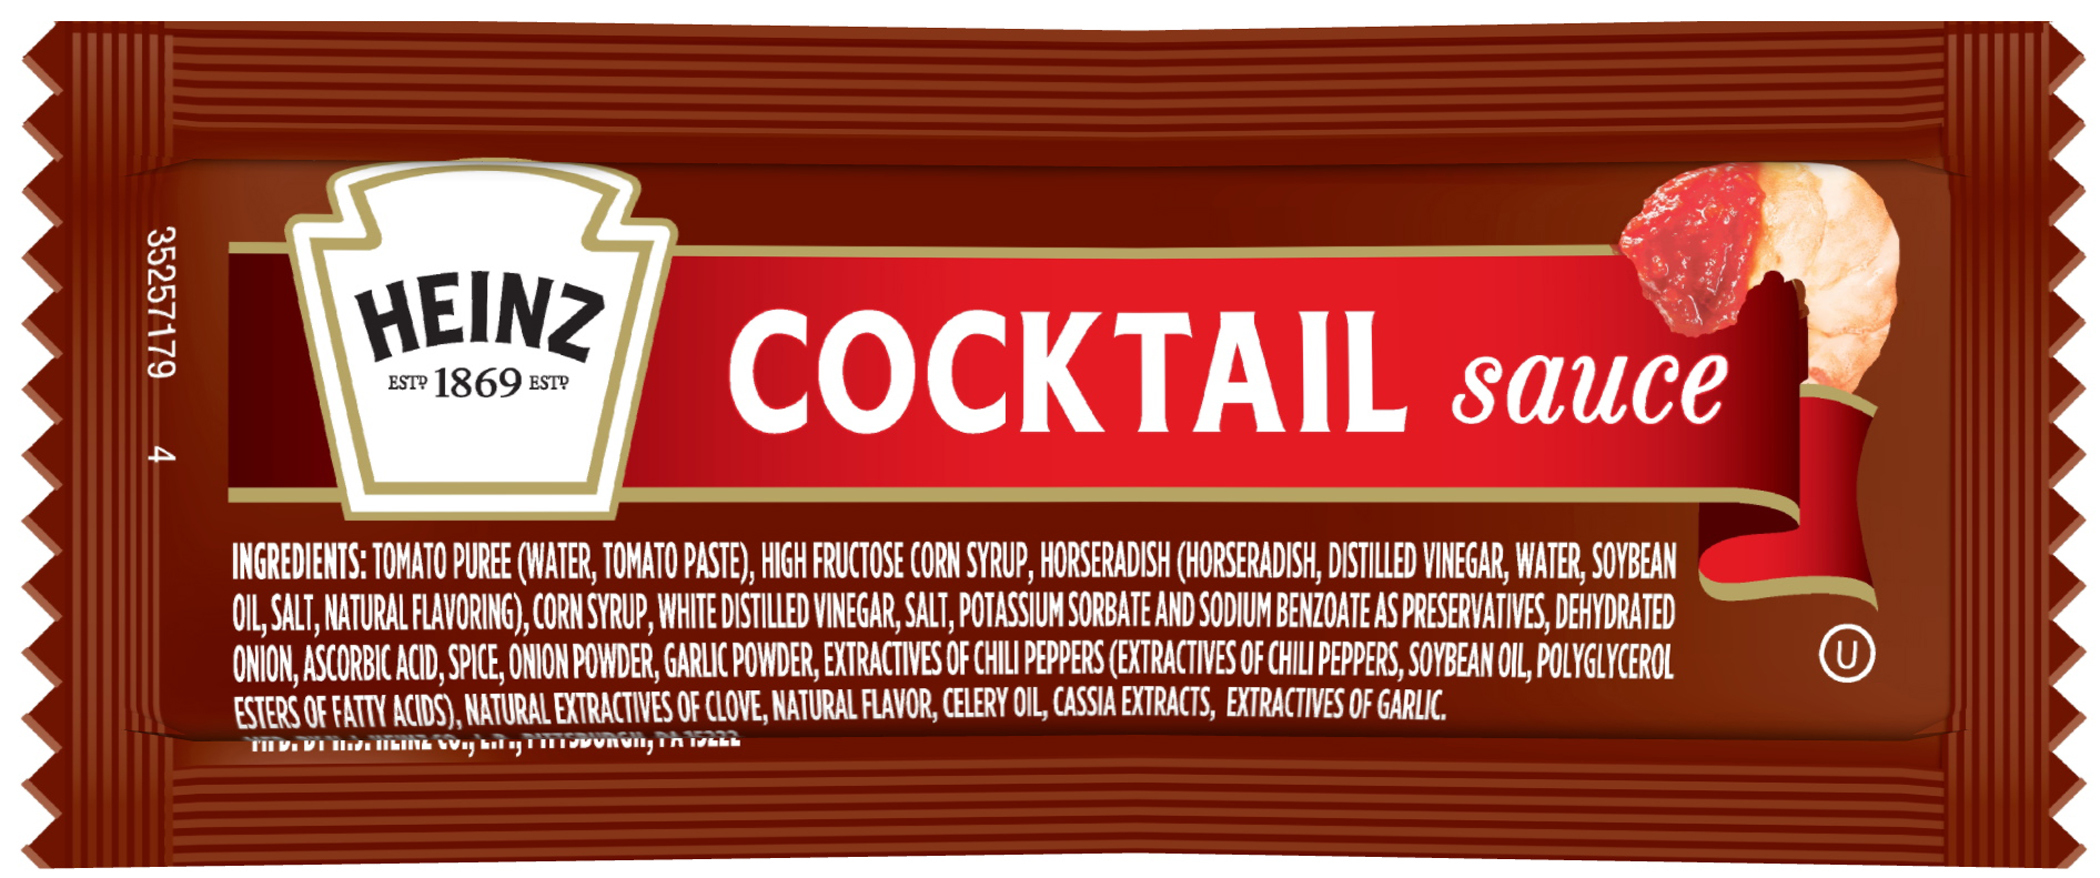 Heinz Cocktail Sauce Packet, 12 gm. image